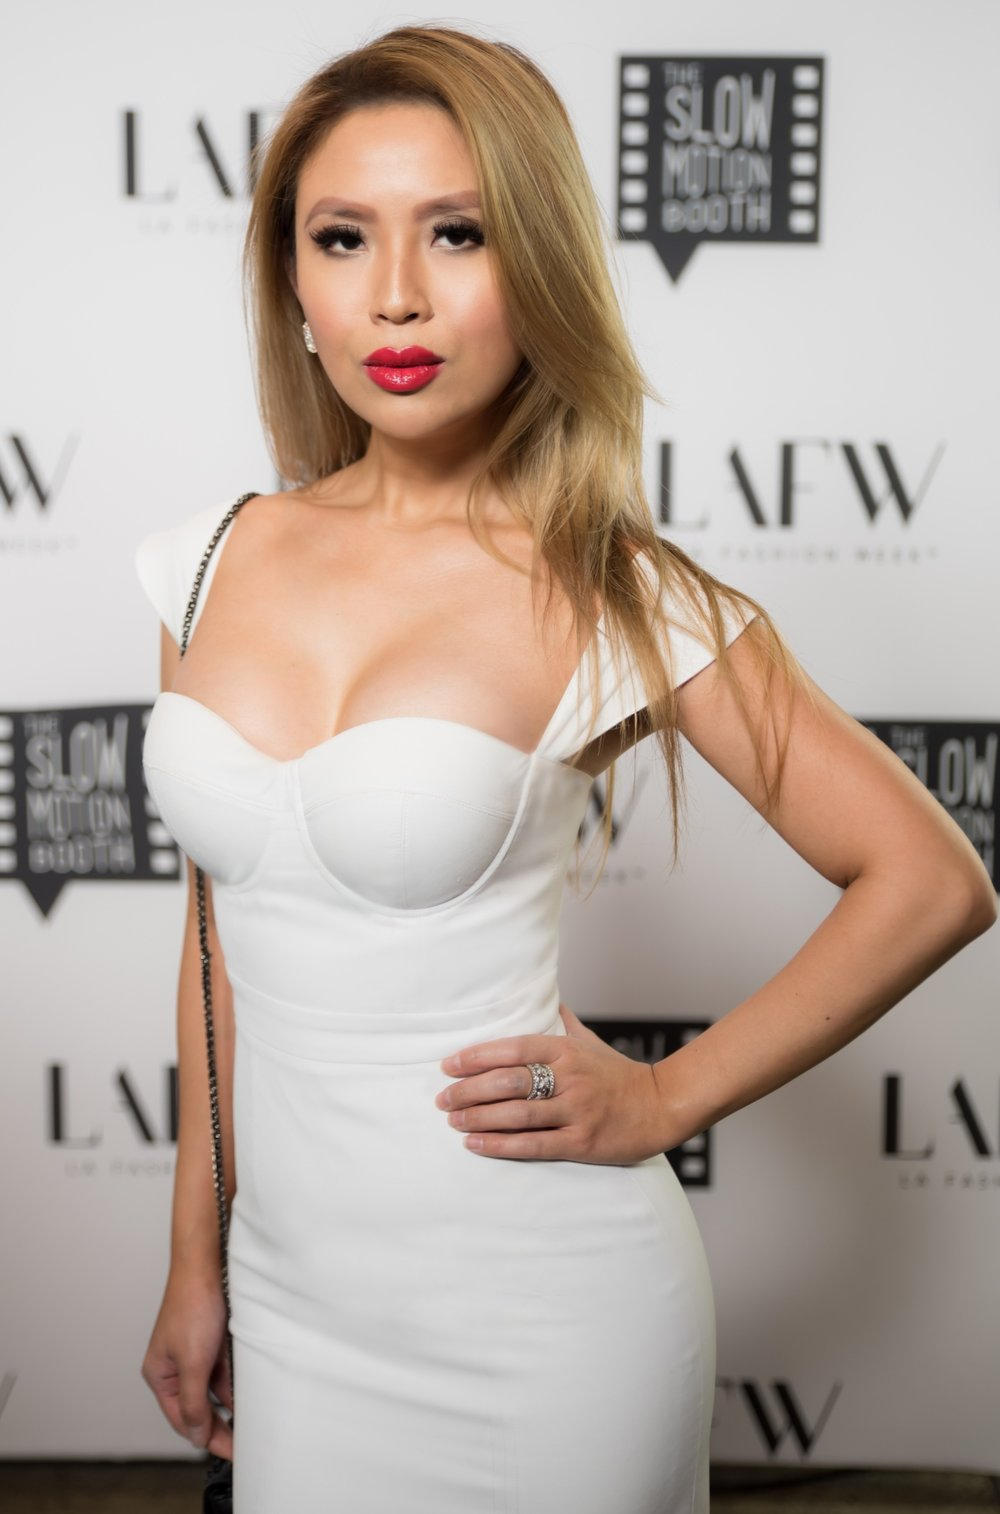 Yvon of  Yvon Lux  wearing  Christian Louboutin Beaute  and  Christian Louboutin  at LAFW. Photo credit:  Kait McKay Photography .